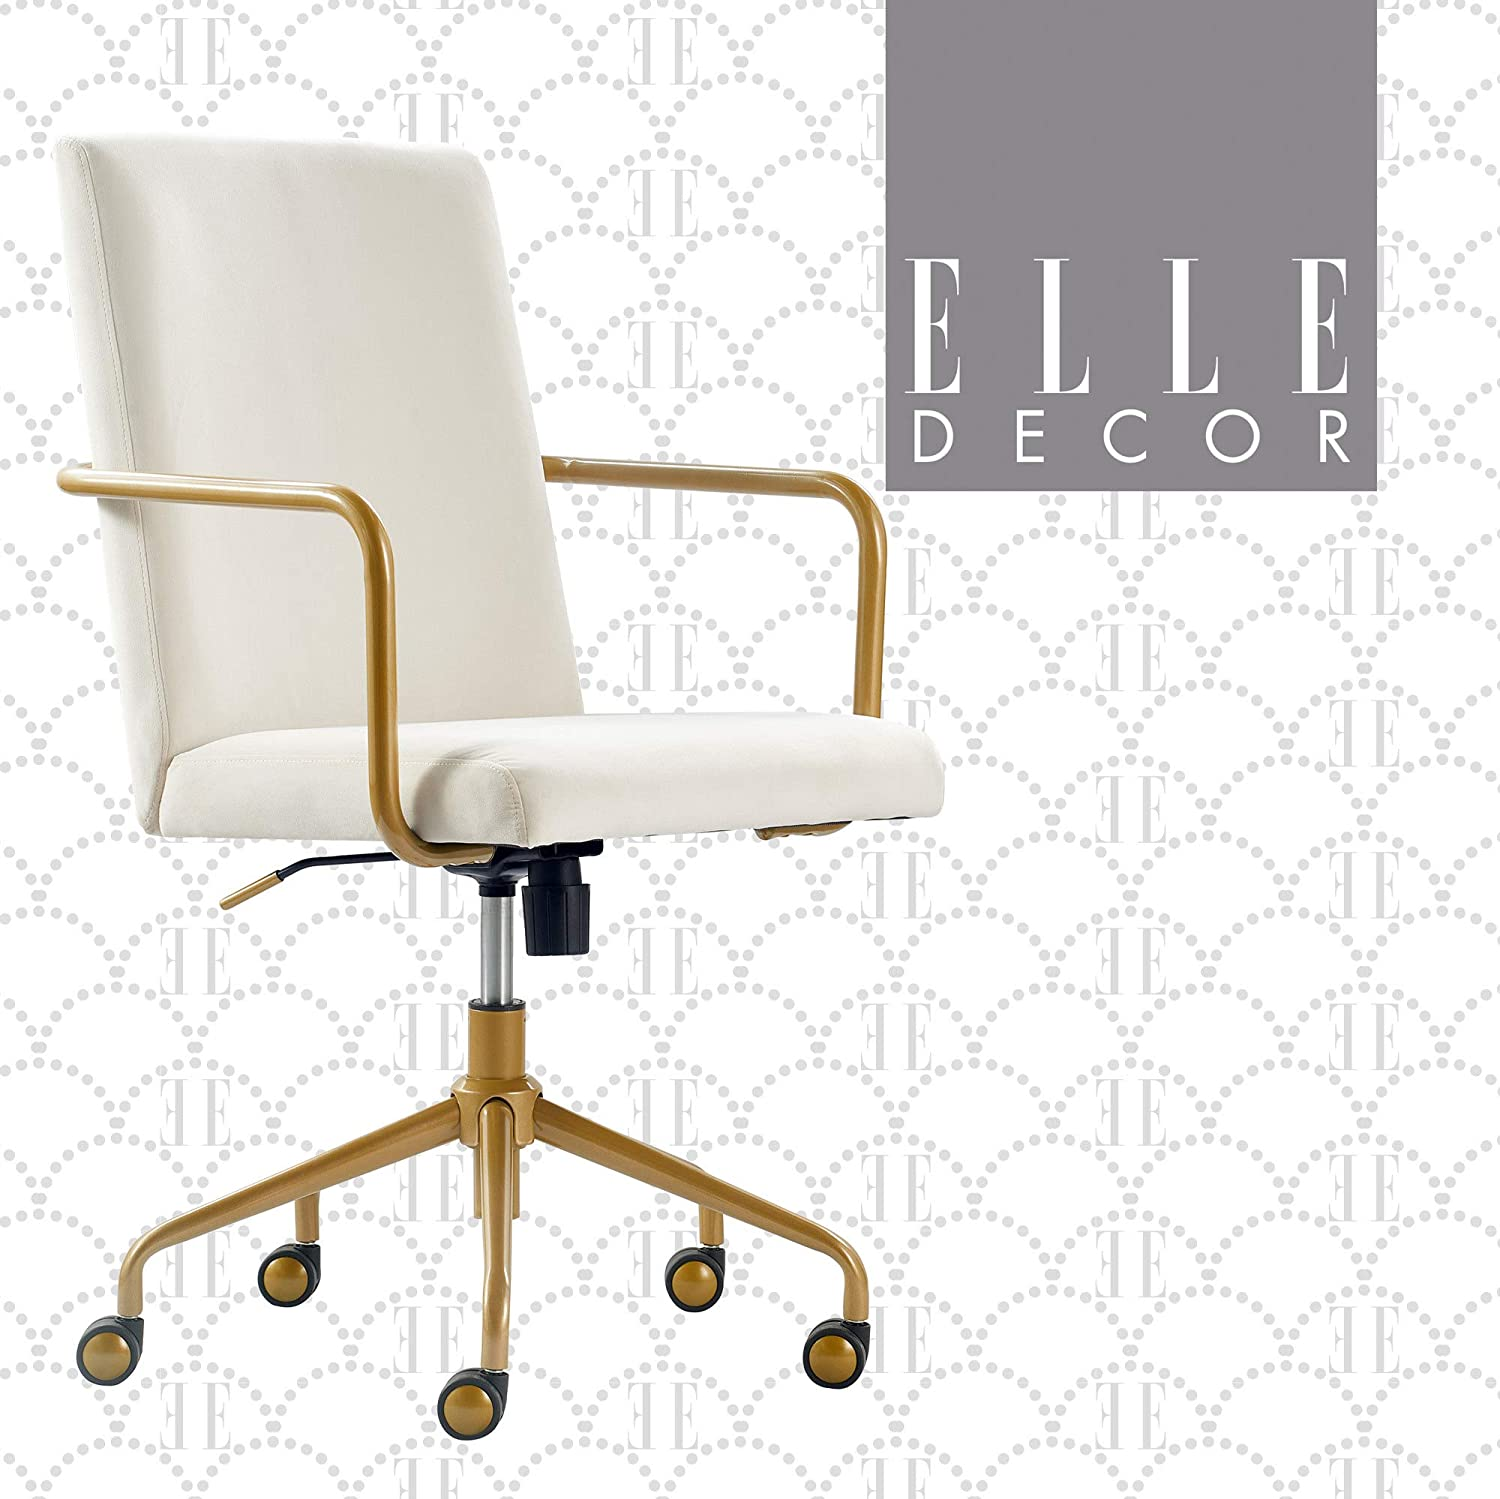 Amazon Com Elle Decor Giselle Modern Home Office Desk Chair High Back Adjustable Computer Chair With Gold Arms Base And Wheels Velvet Fabric Cream Furniture Decor